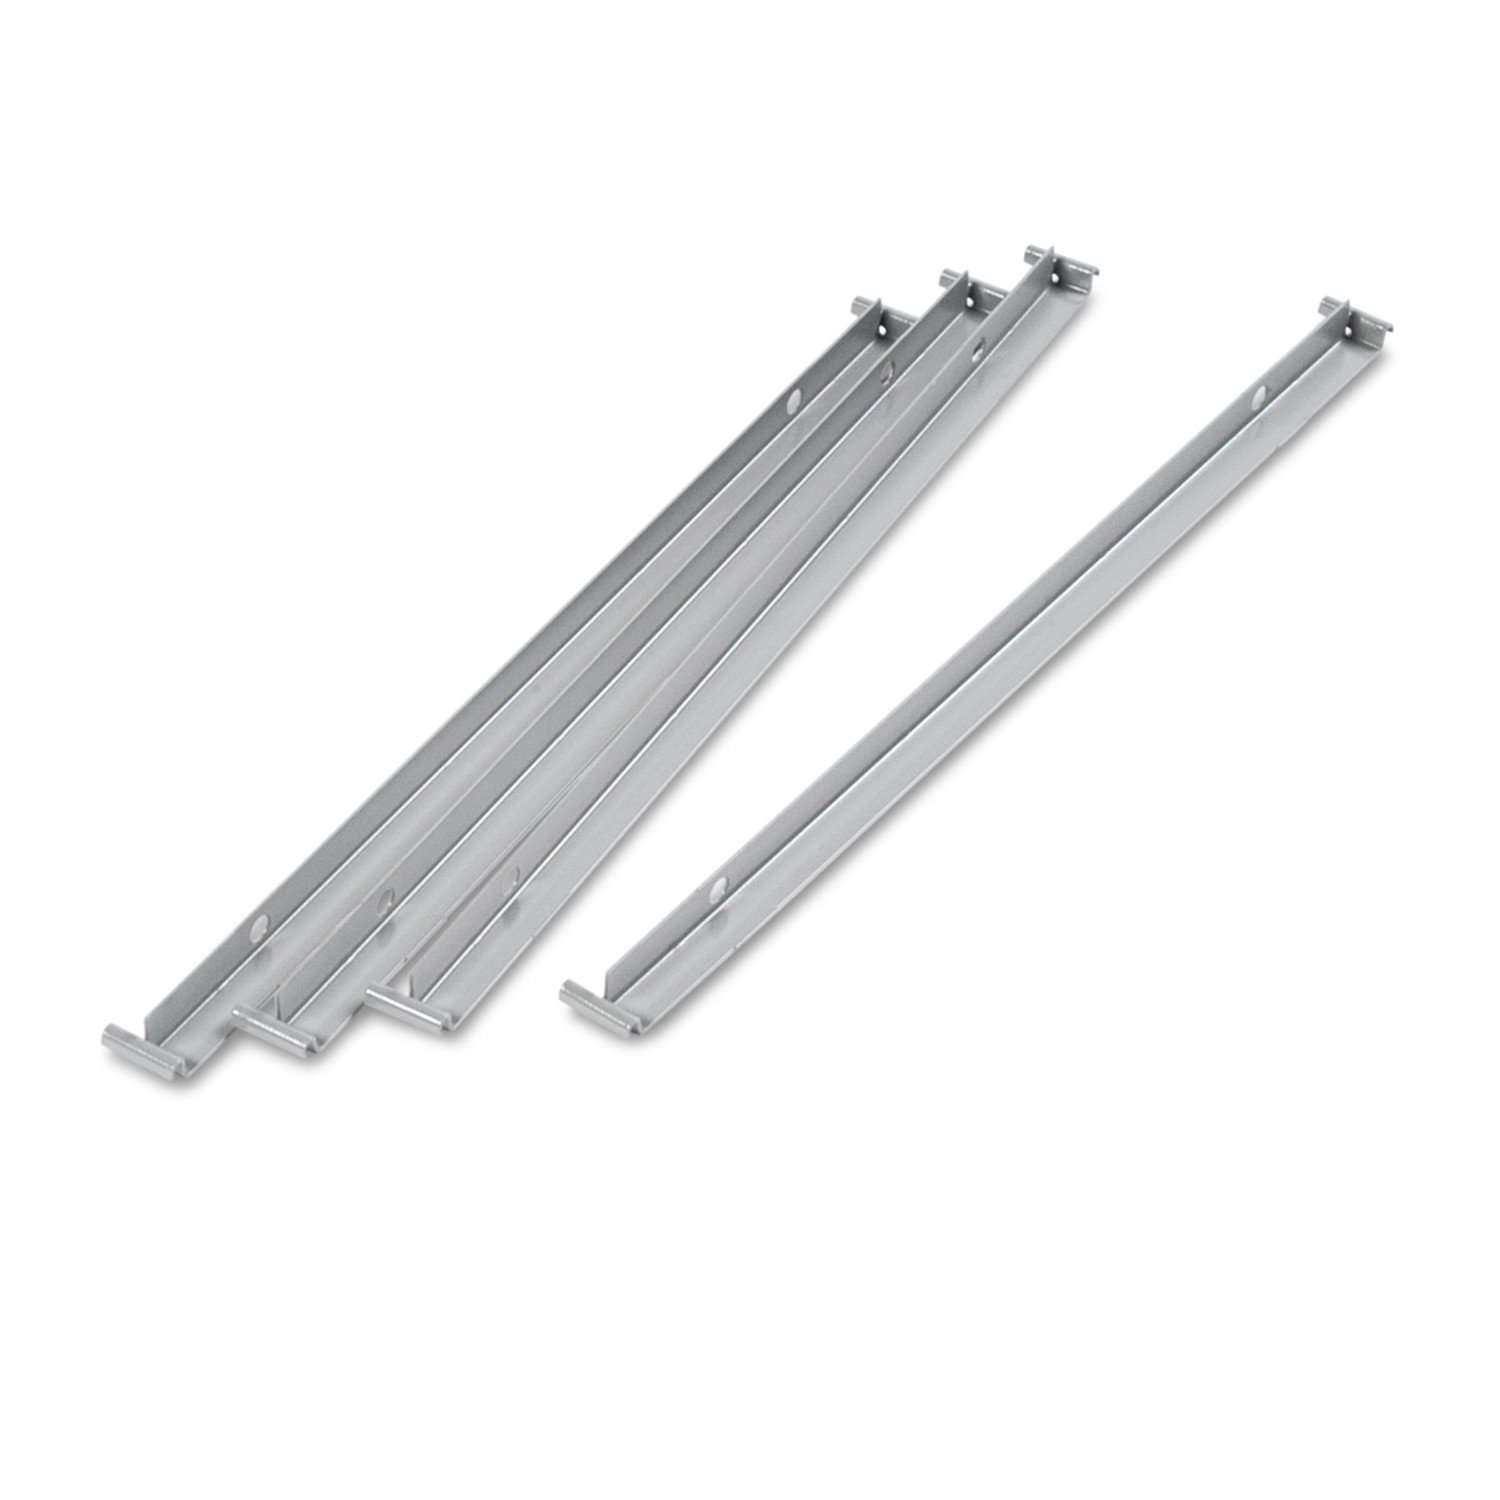 Alera ALELF3036 Two Row Hangrails for 30 or 36 Files, Aluminum (Pack of 4) United Stationers